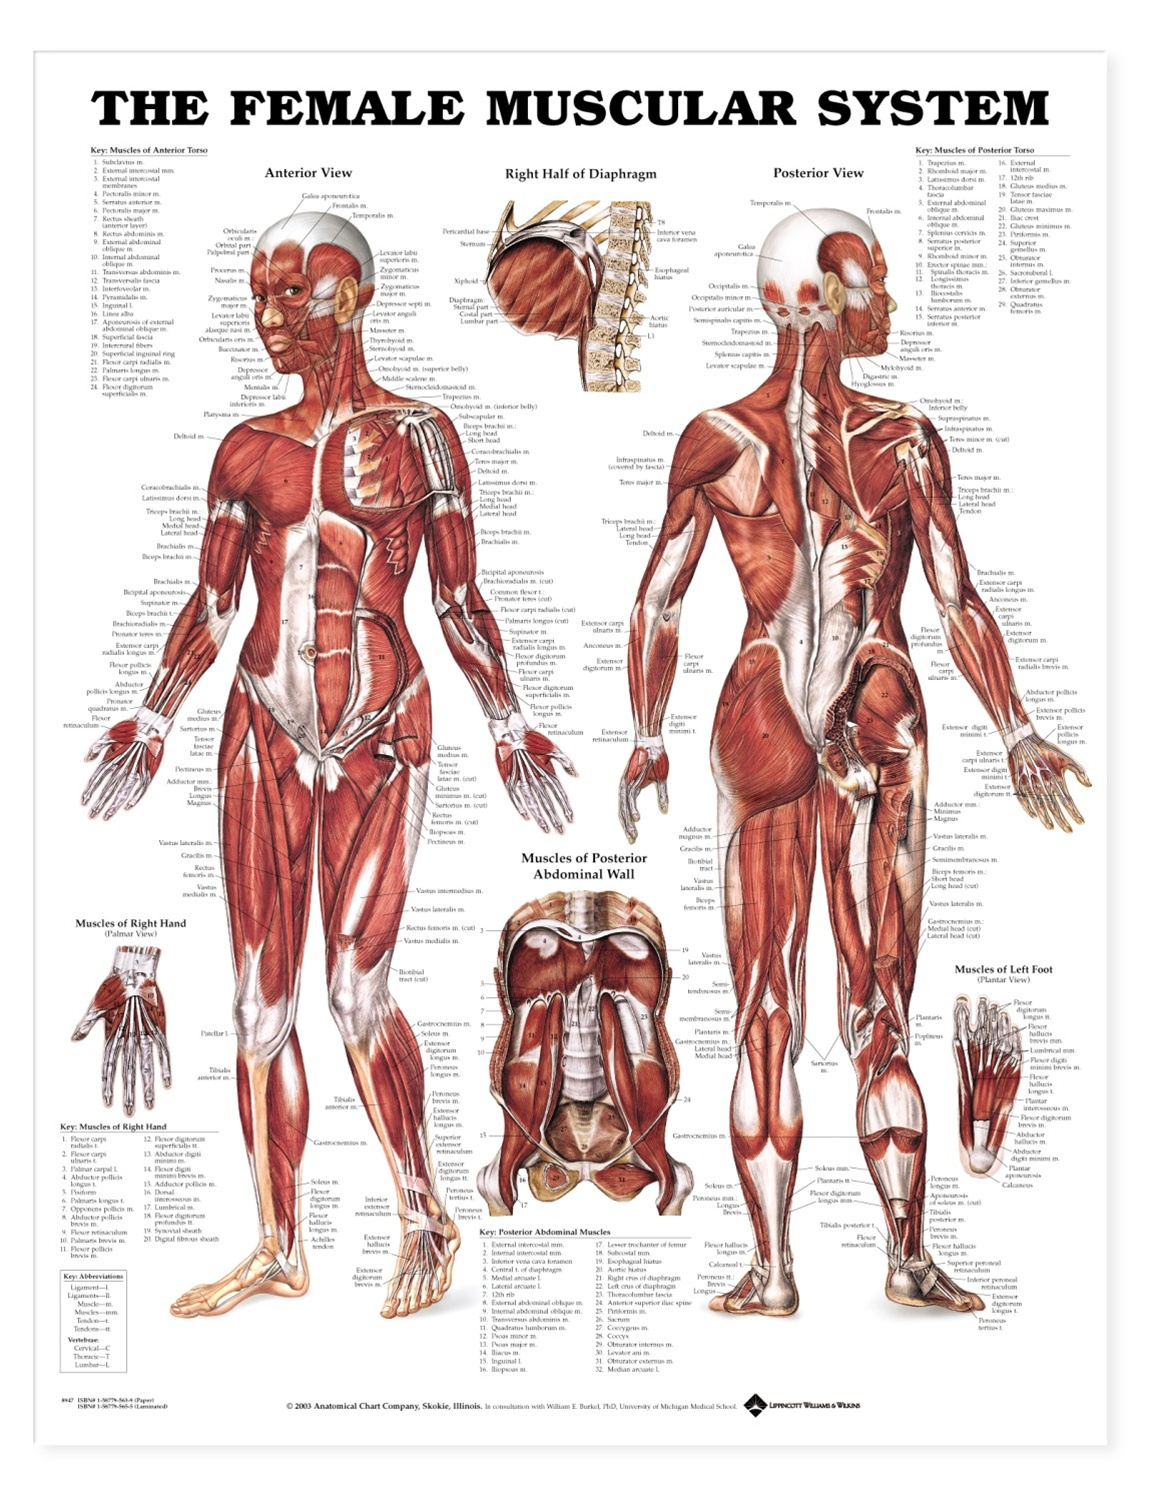 The female muscular system anatomical chart anatomy models and